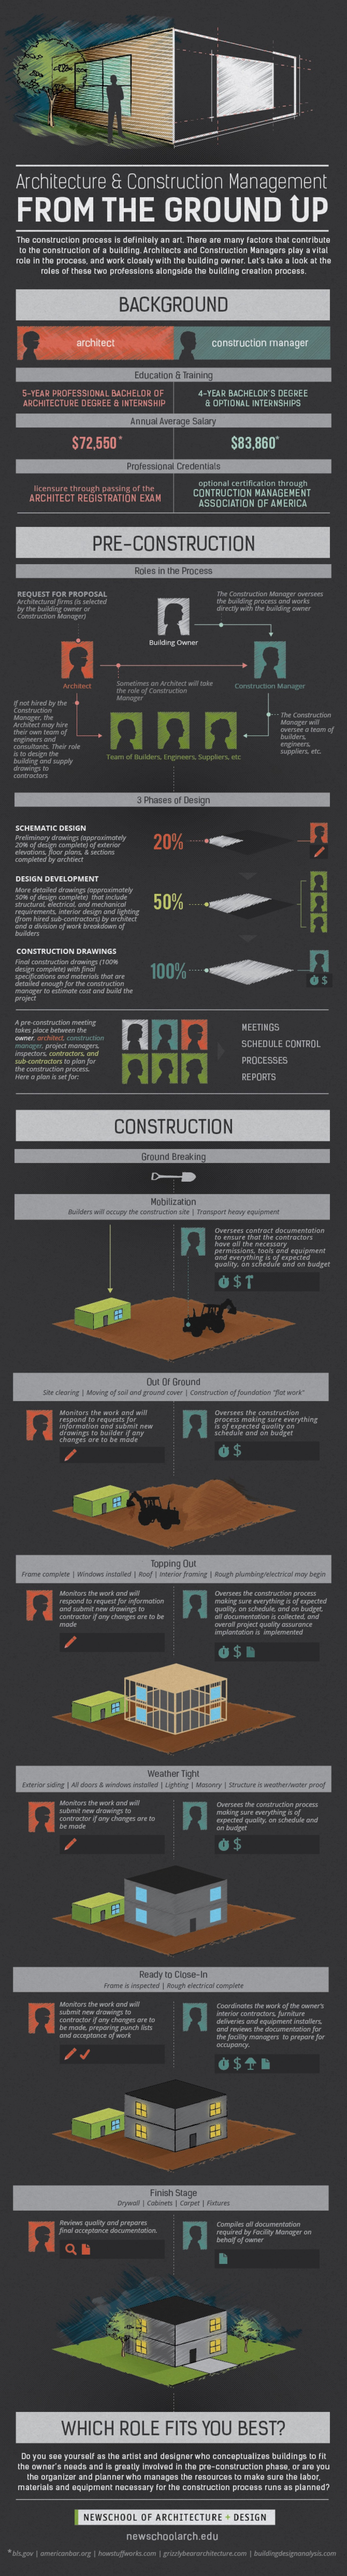 Architecture and Construction management